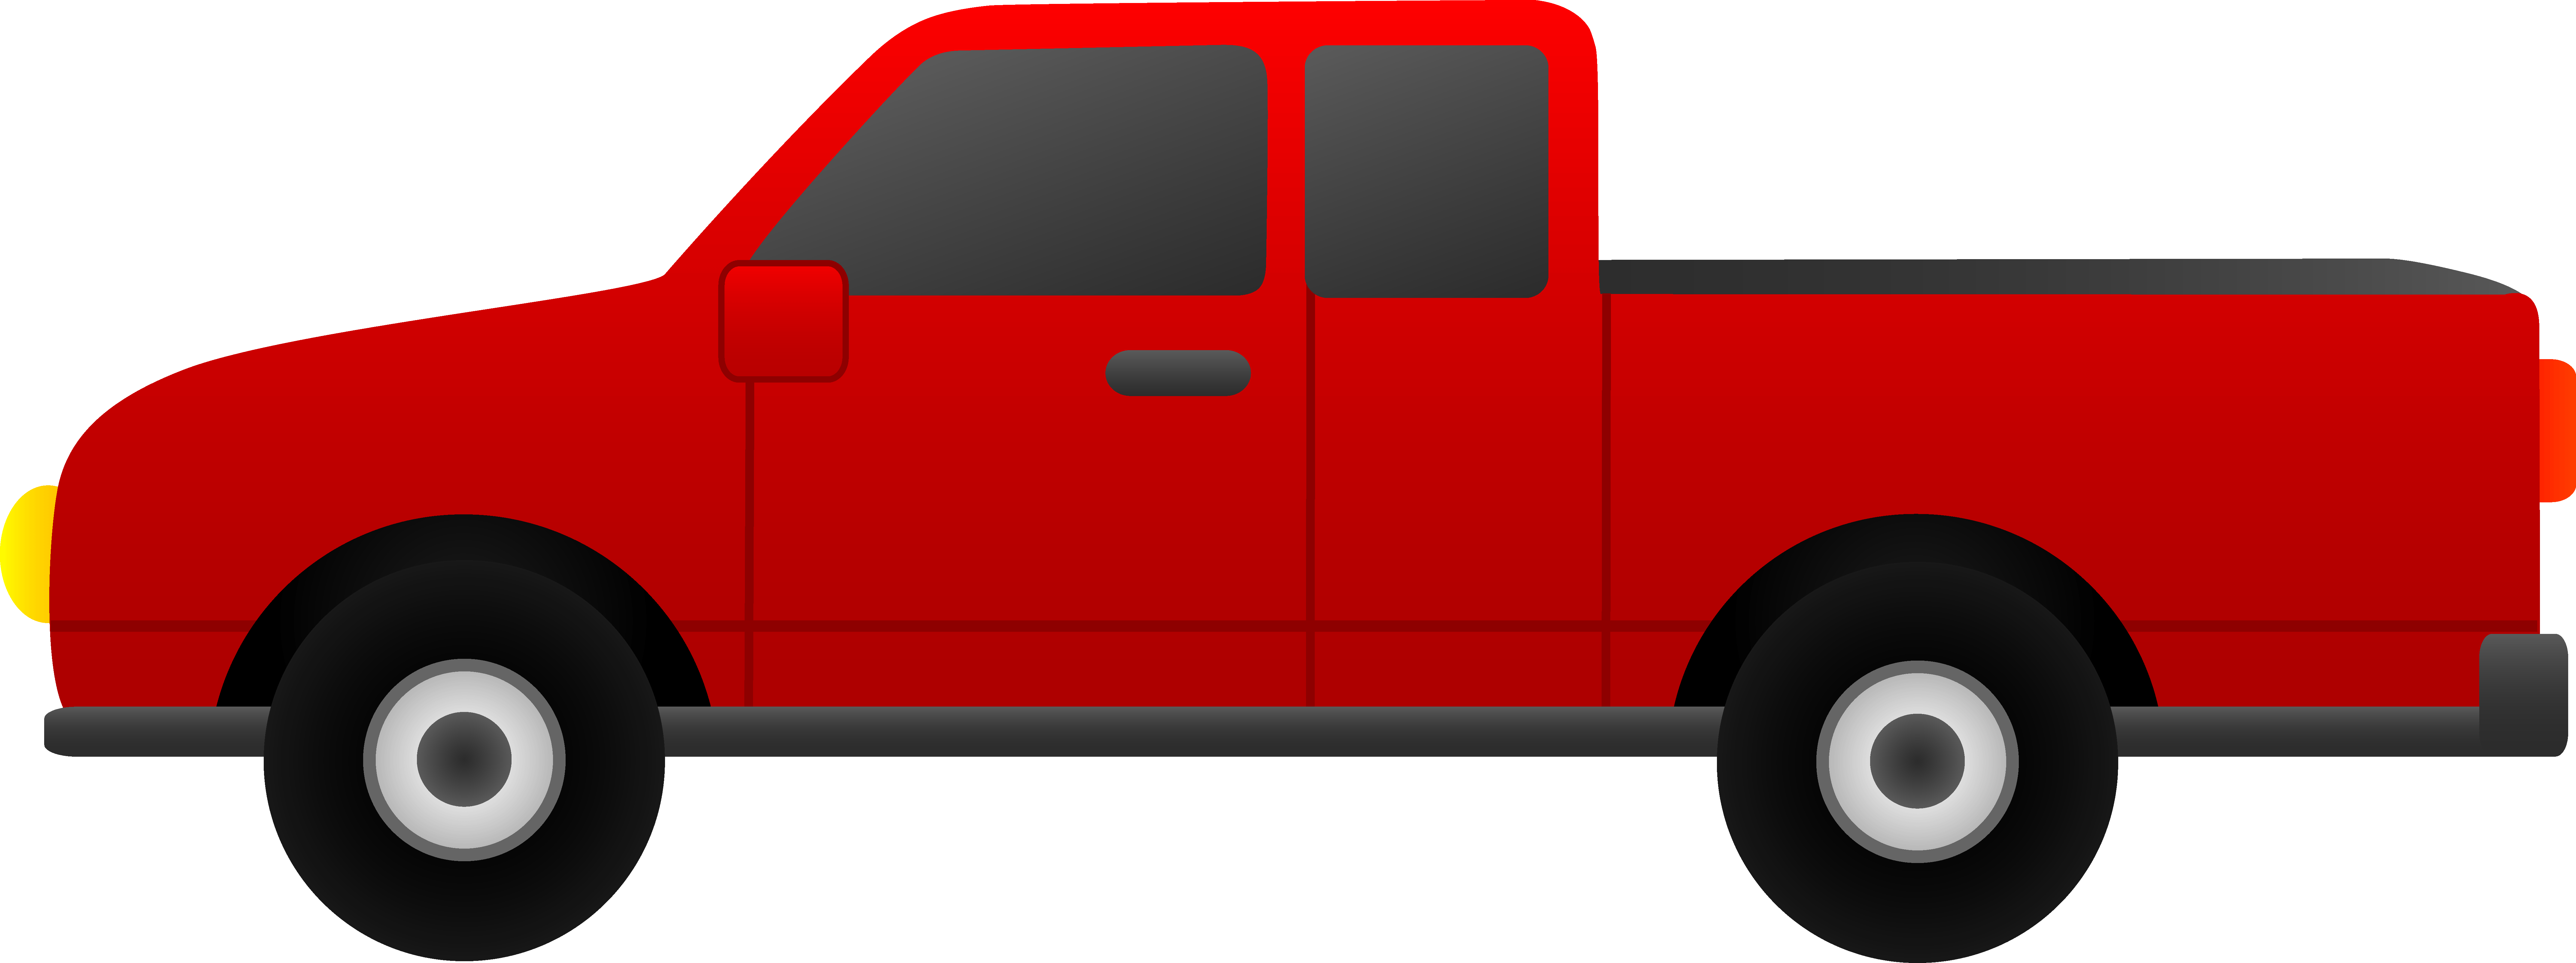 Red Truck Cliparts.